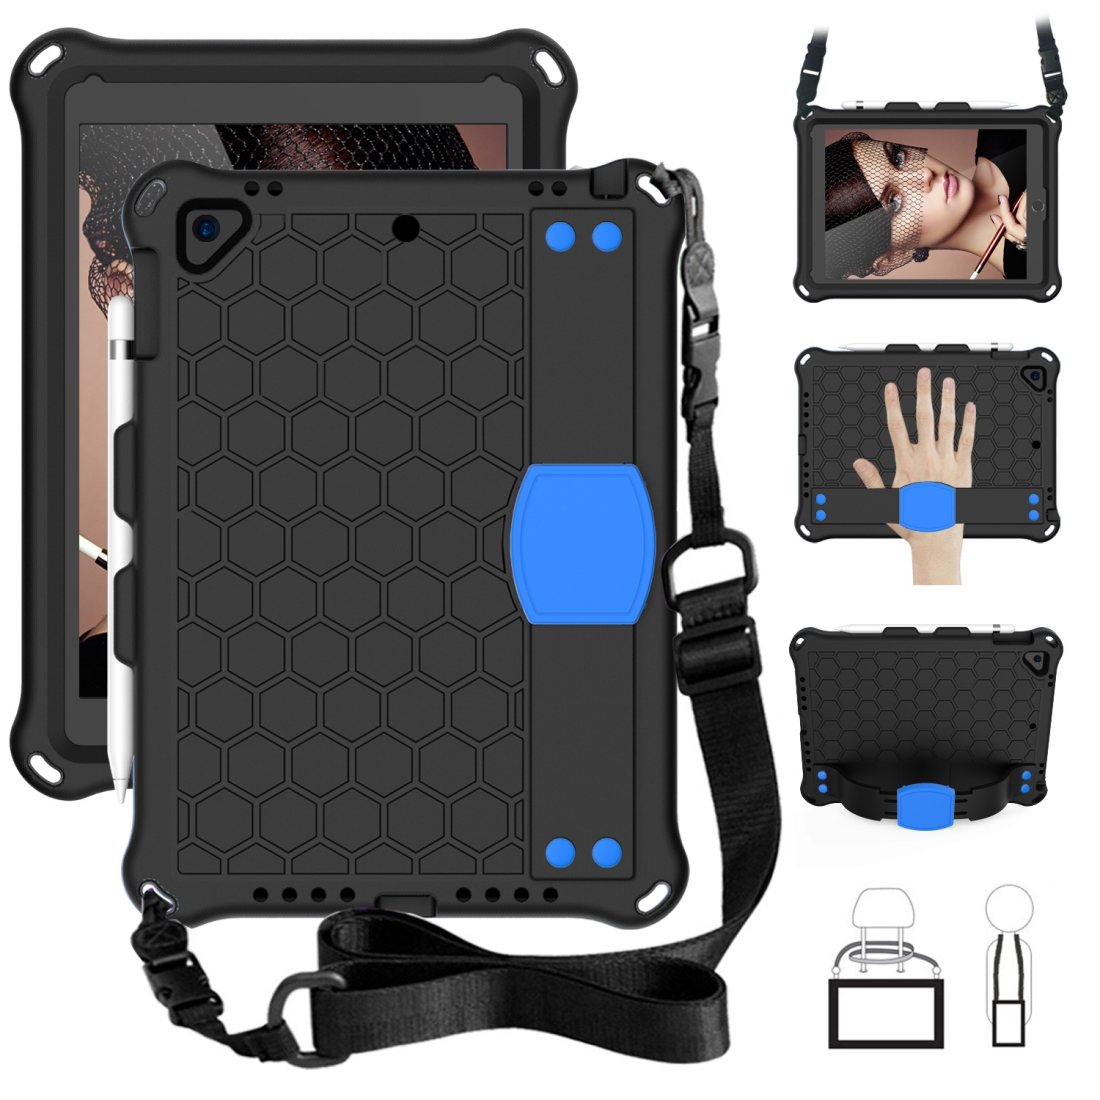 iPad 9.7 Case 2017/2018 Honeycomb Four Corner Protective Shell With Straps (Black/Blue)